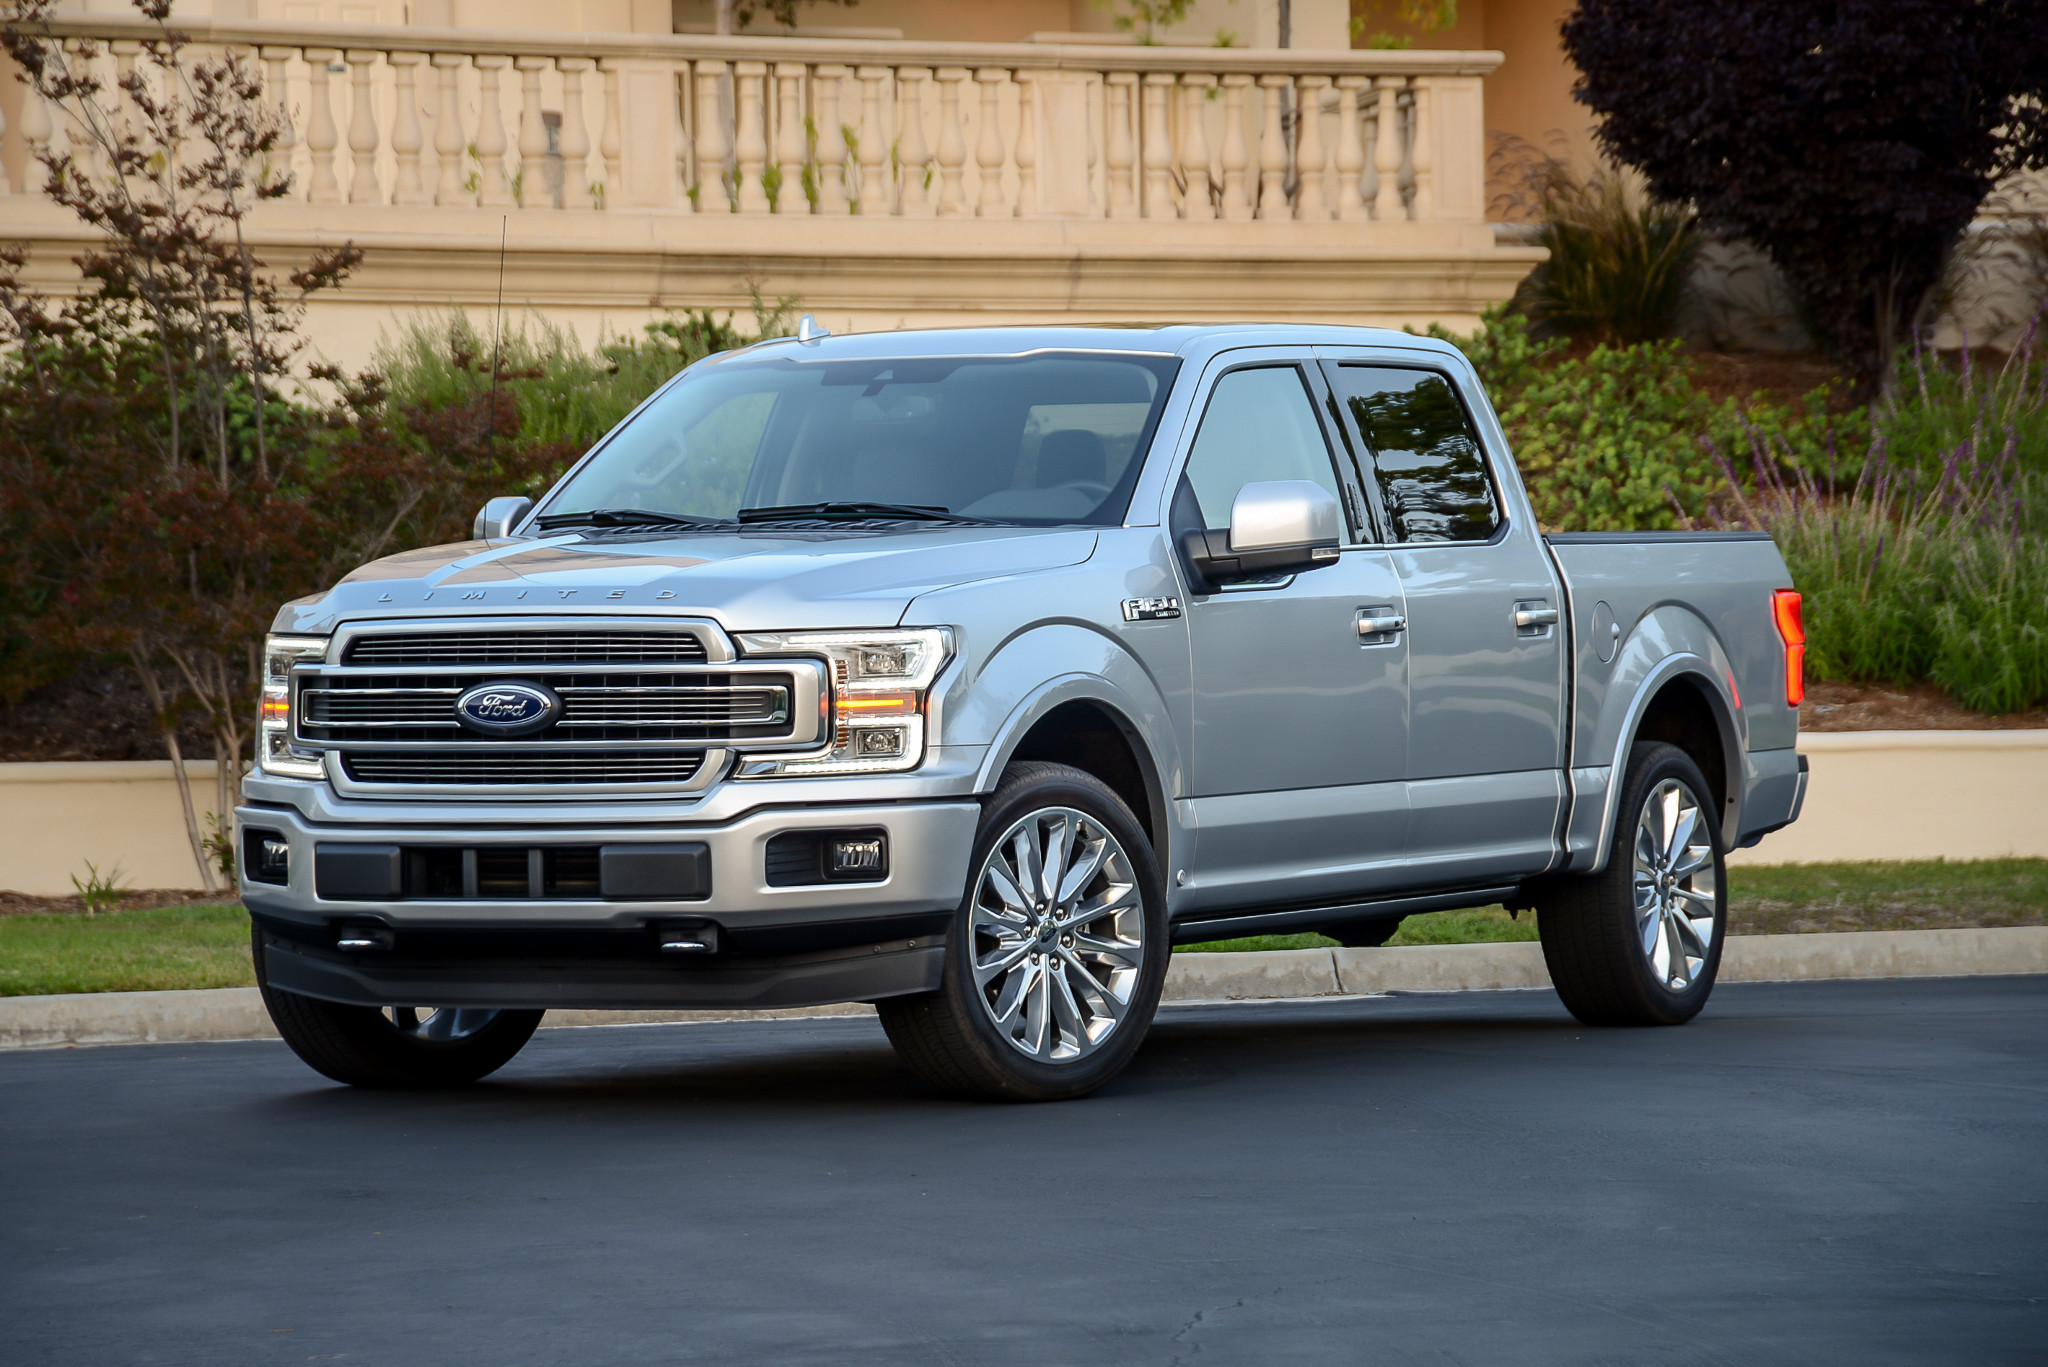 ford-f-150-limited-2019-01-angle--exterior--front--silver.jpg